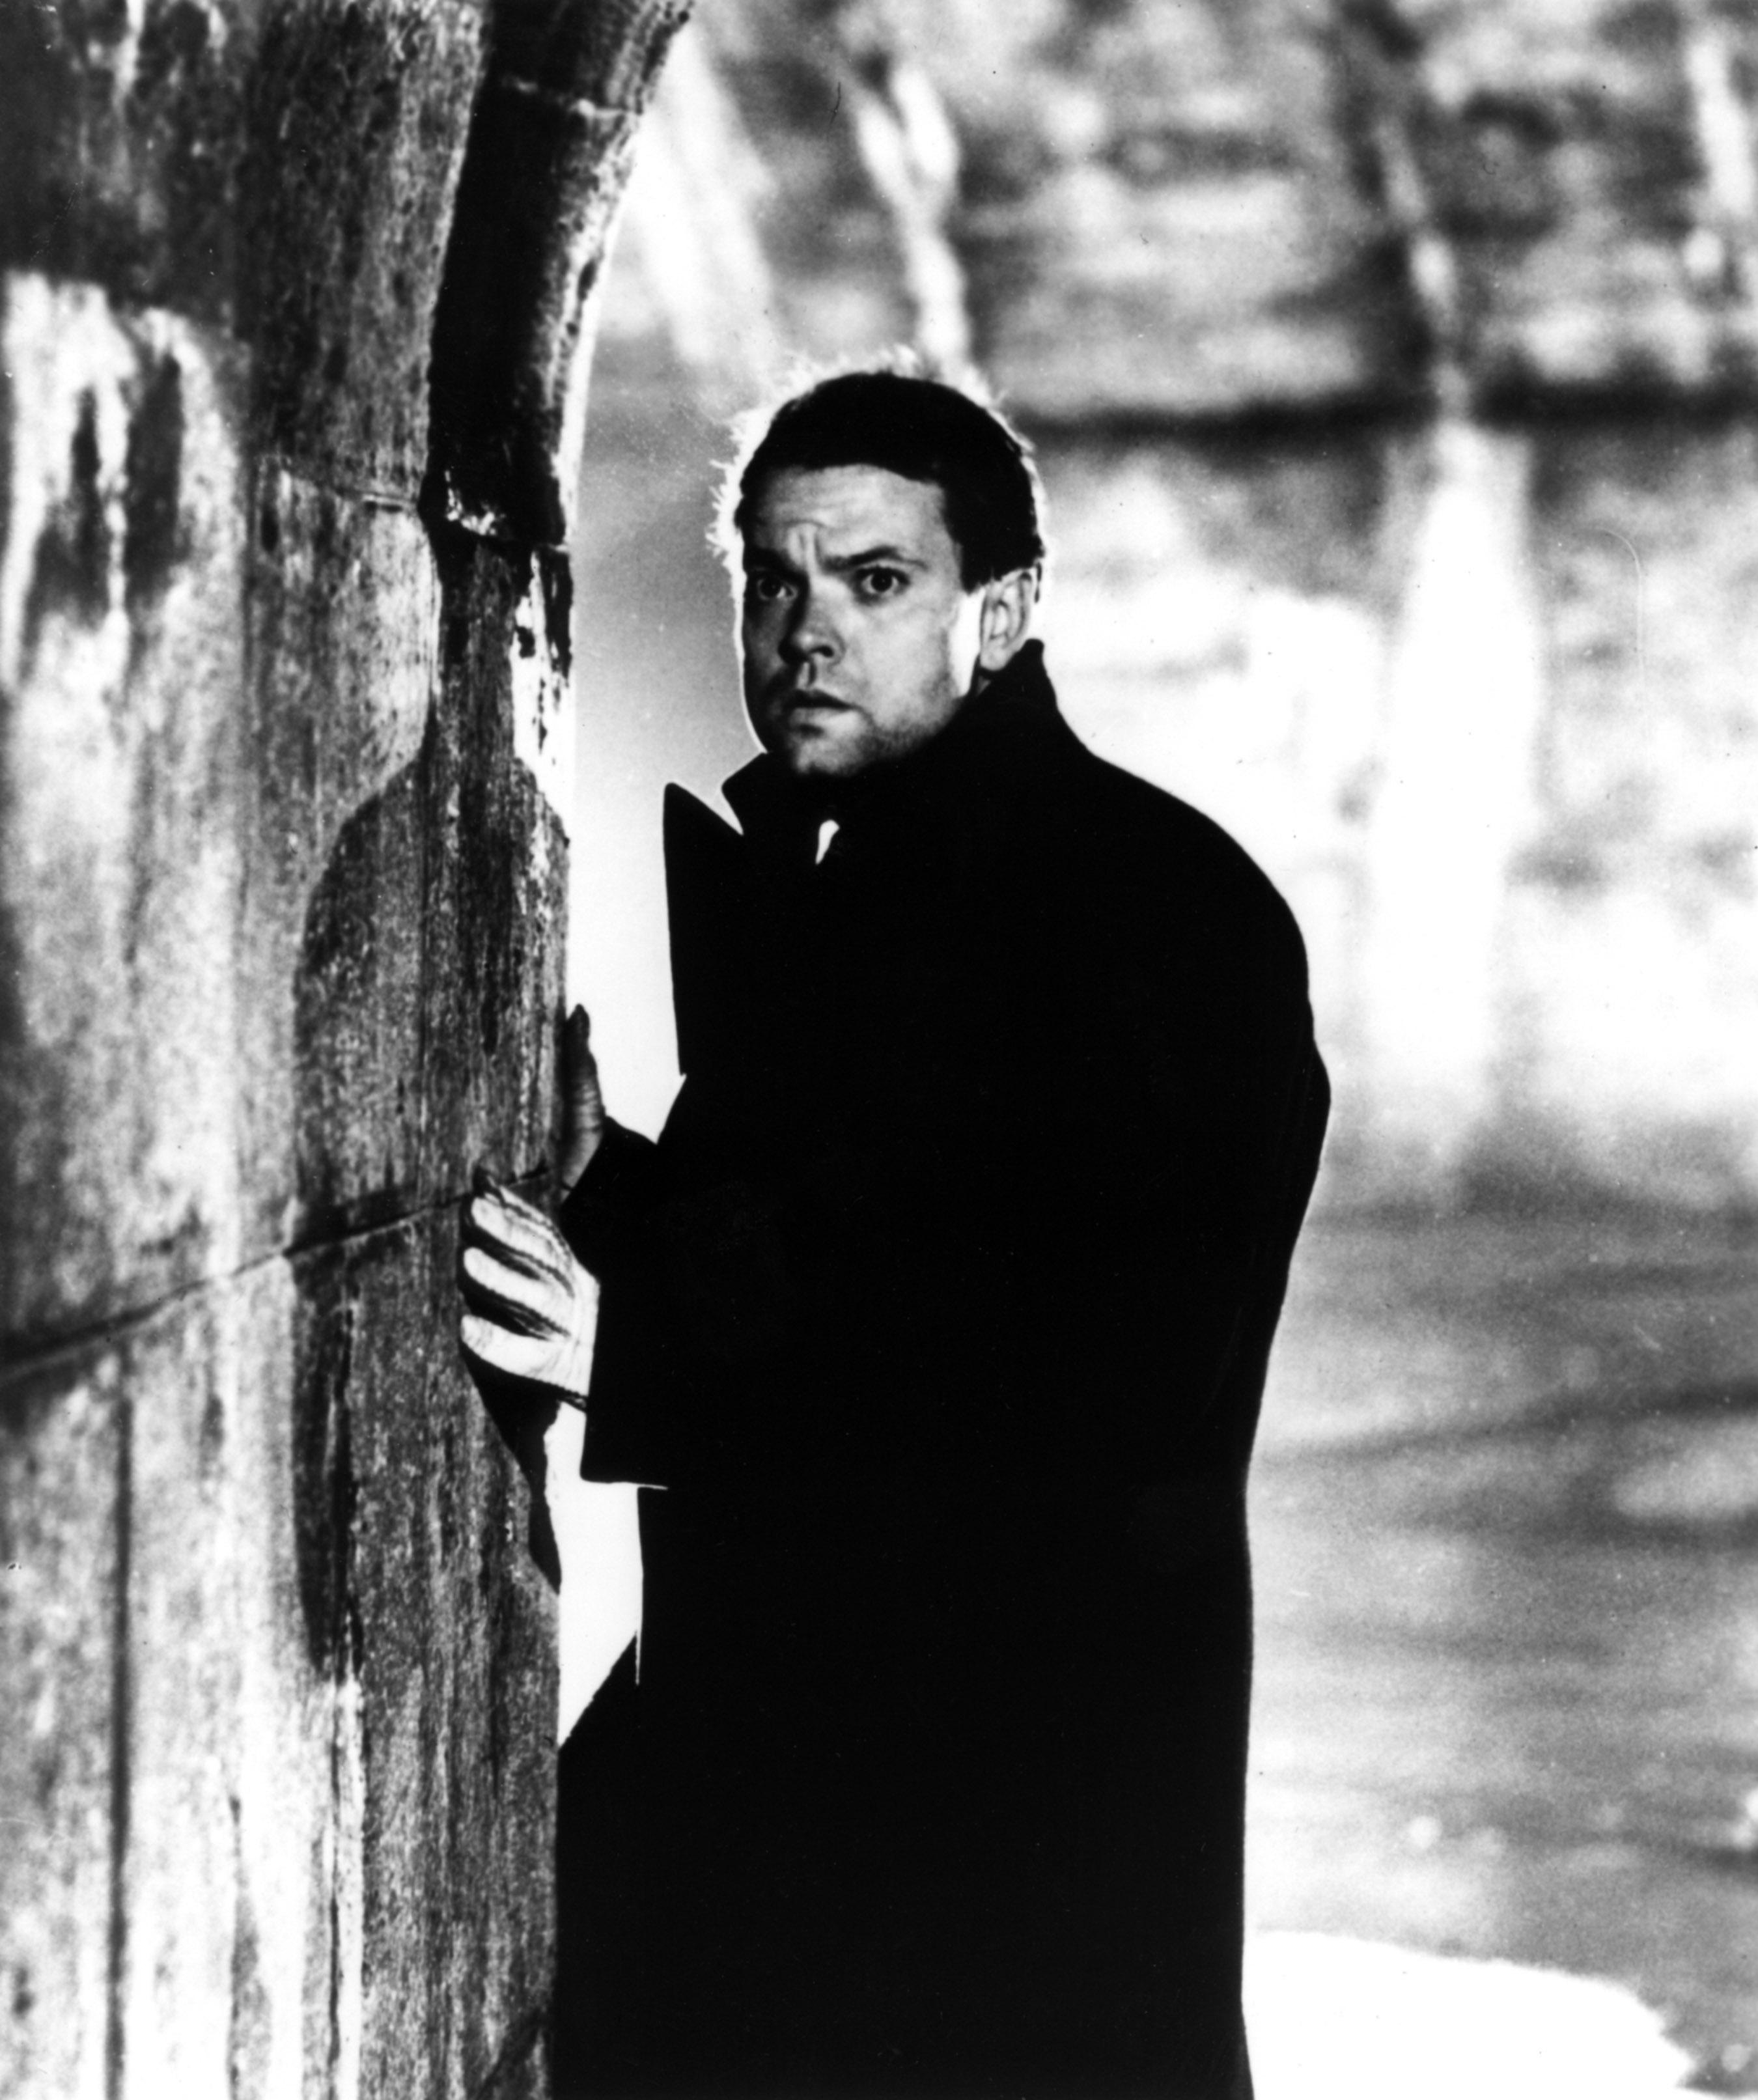 the history of cinema and george orson welles In the century since his birth, george orson welles has come to embody  welles' stage history practically outshines his film career, especially.